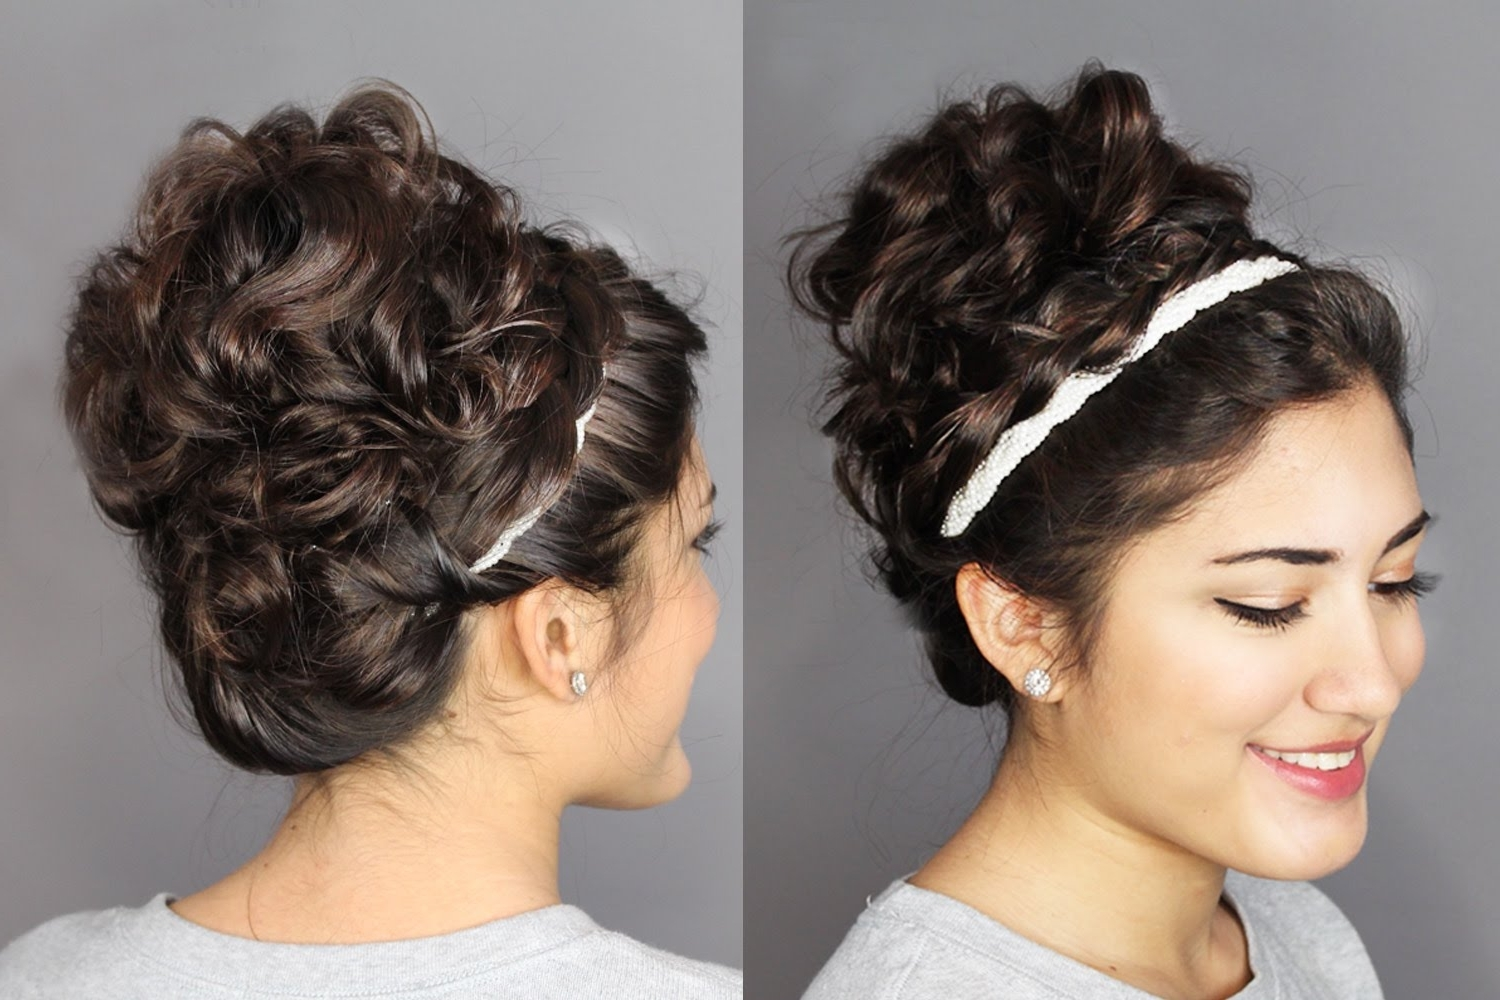 Second Day Hair Holiday Updo: Braided Headband & Messy, Curly Bun Within Updo Hairstyles For Sweet  (View 6 of 15)